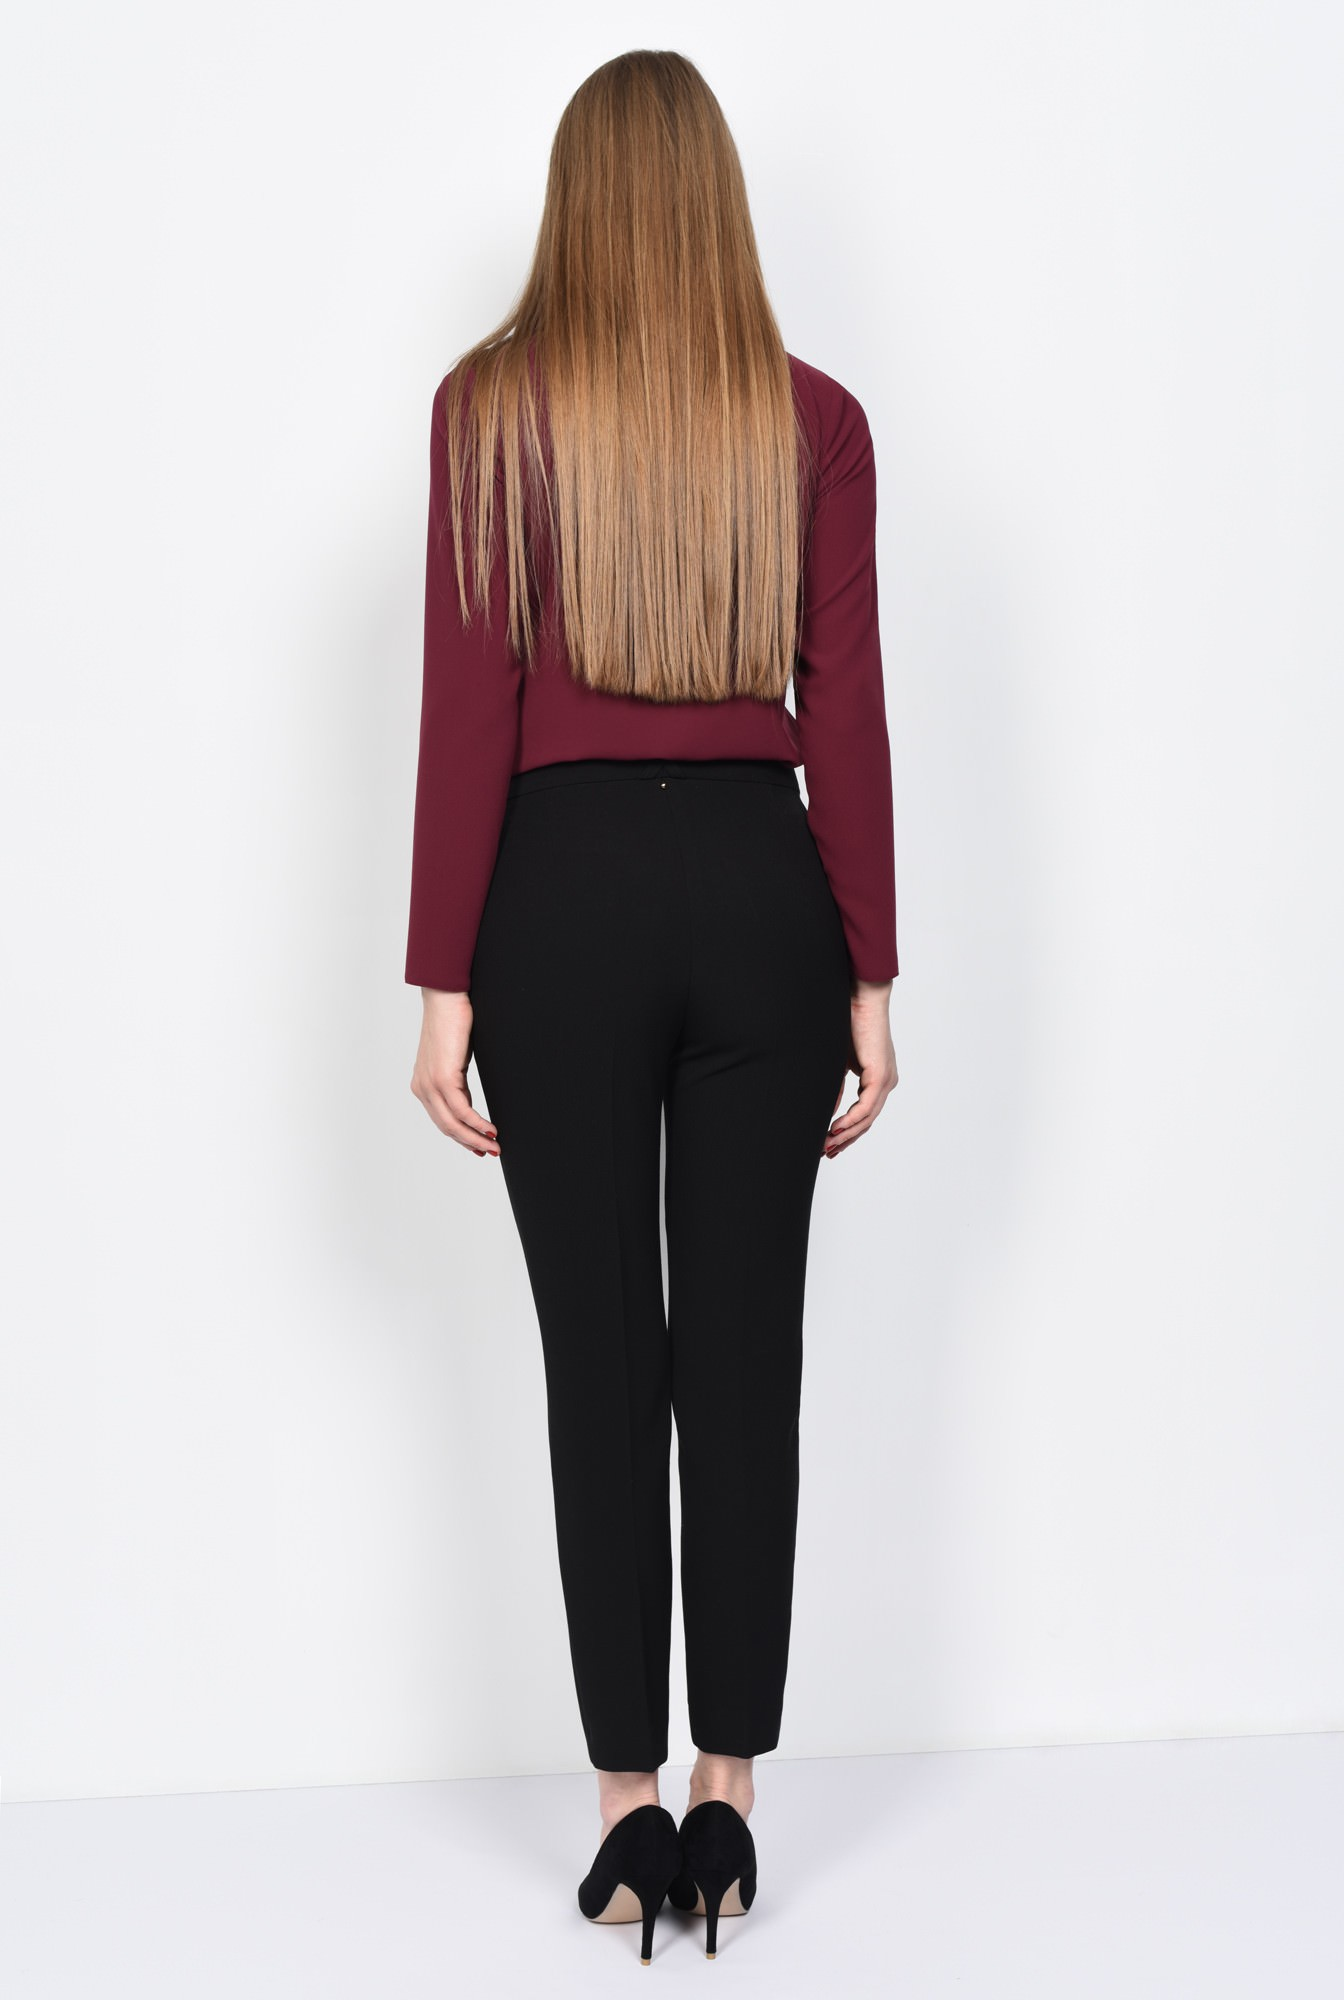 1 - PANTALON OFFICE PT 123-NEGRU